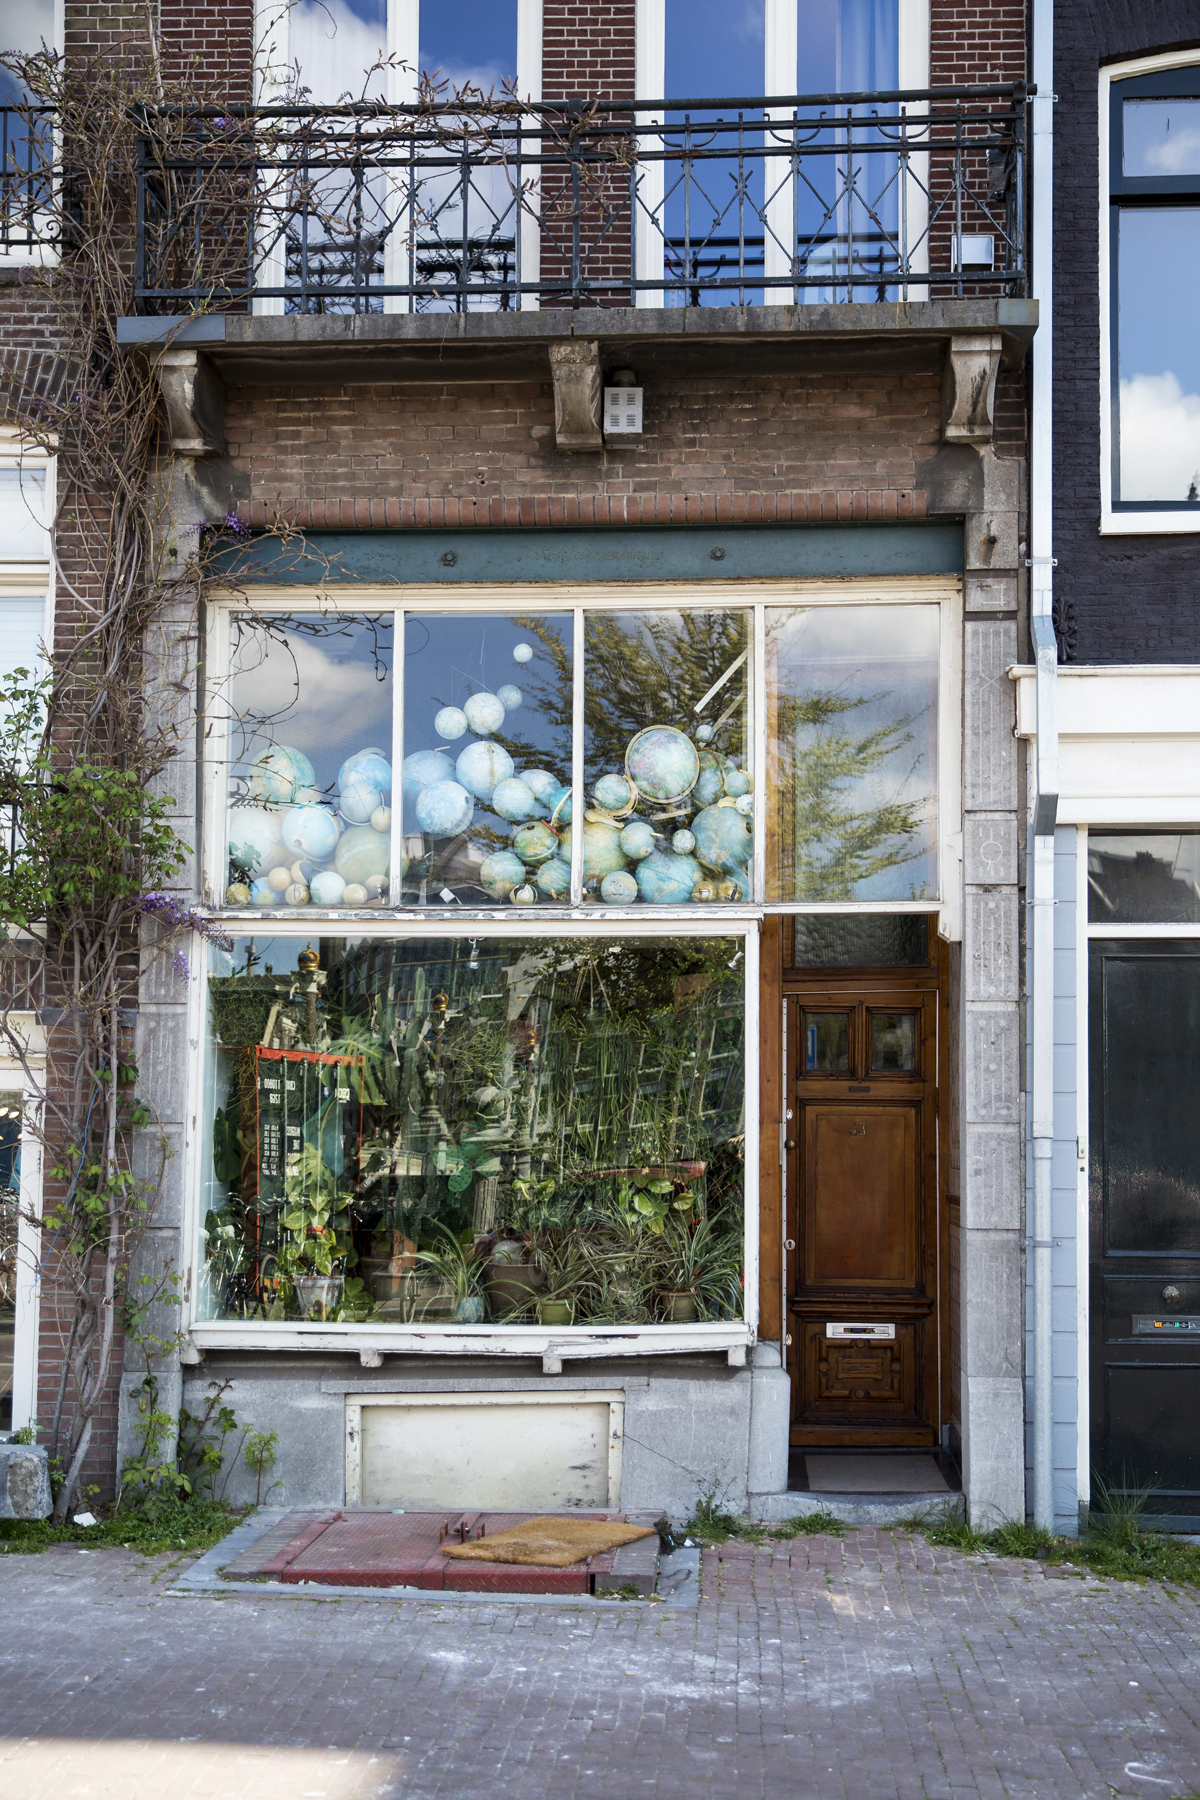 The Dutch House with Globes and Plants!  This one pops up on Instagram all the time. Apparently the plants and globes have been here for 20 years, I couldn't find out why or who owns it but I'm so glad it's here. If you are looking for it, it's on the way to the Botanical Gardens near Cafe t' Hooischip.